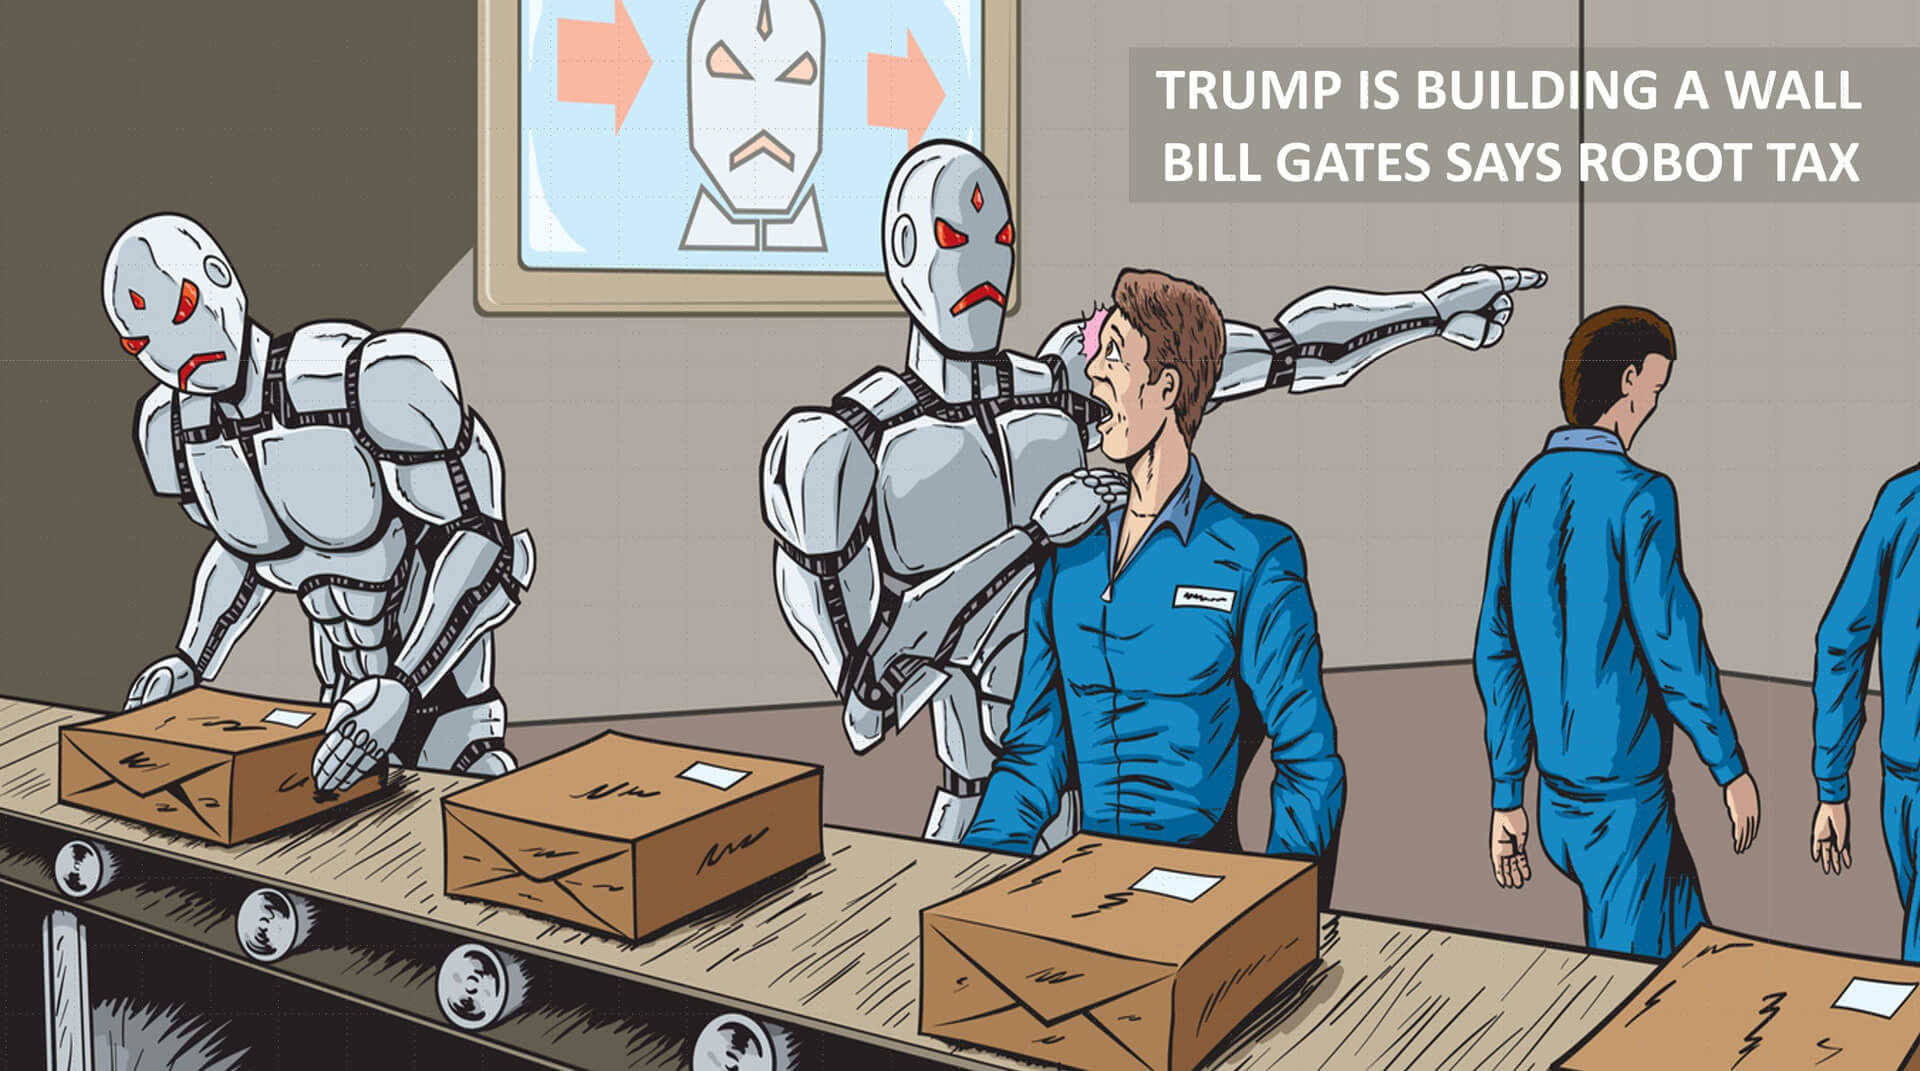 Donald Trumps wants to build a wall, Bill Gates says Robot Tax - Marketing Keynote Speaker Igor Beuker